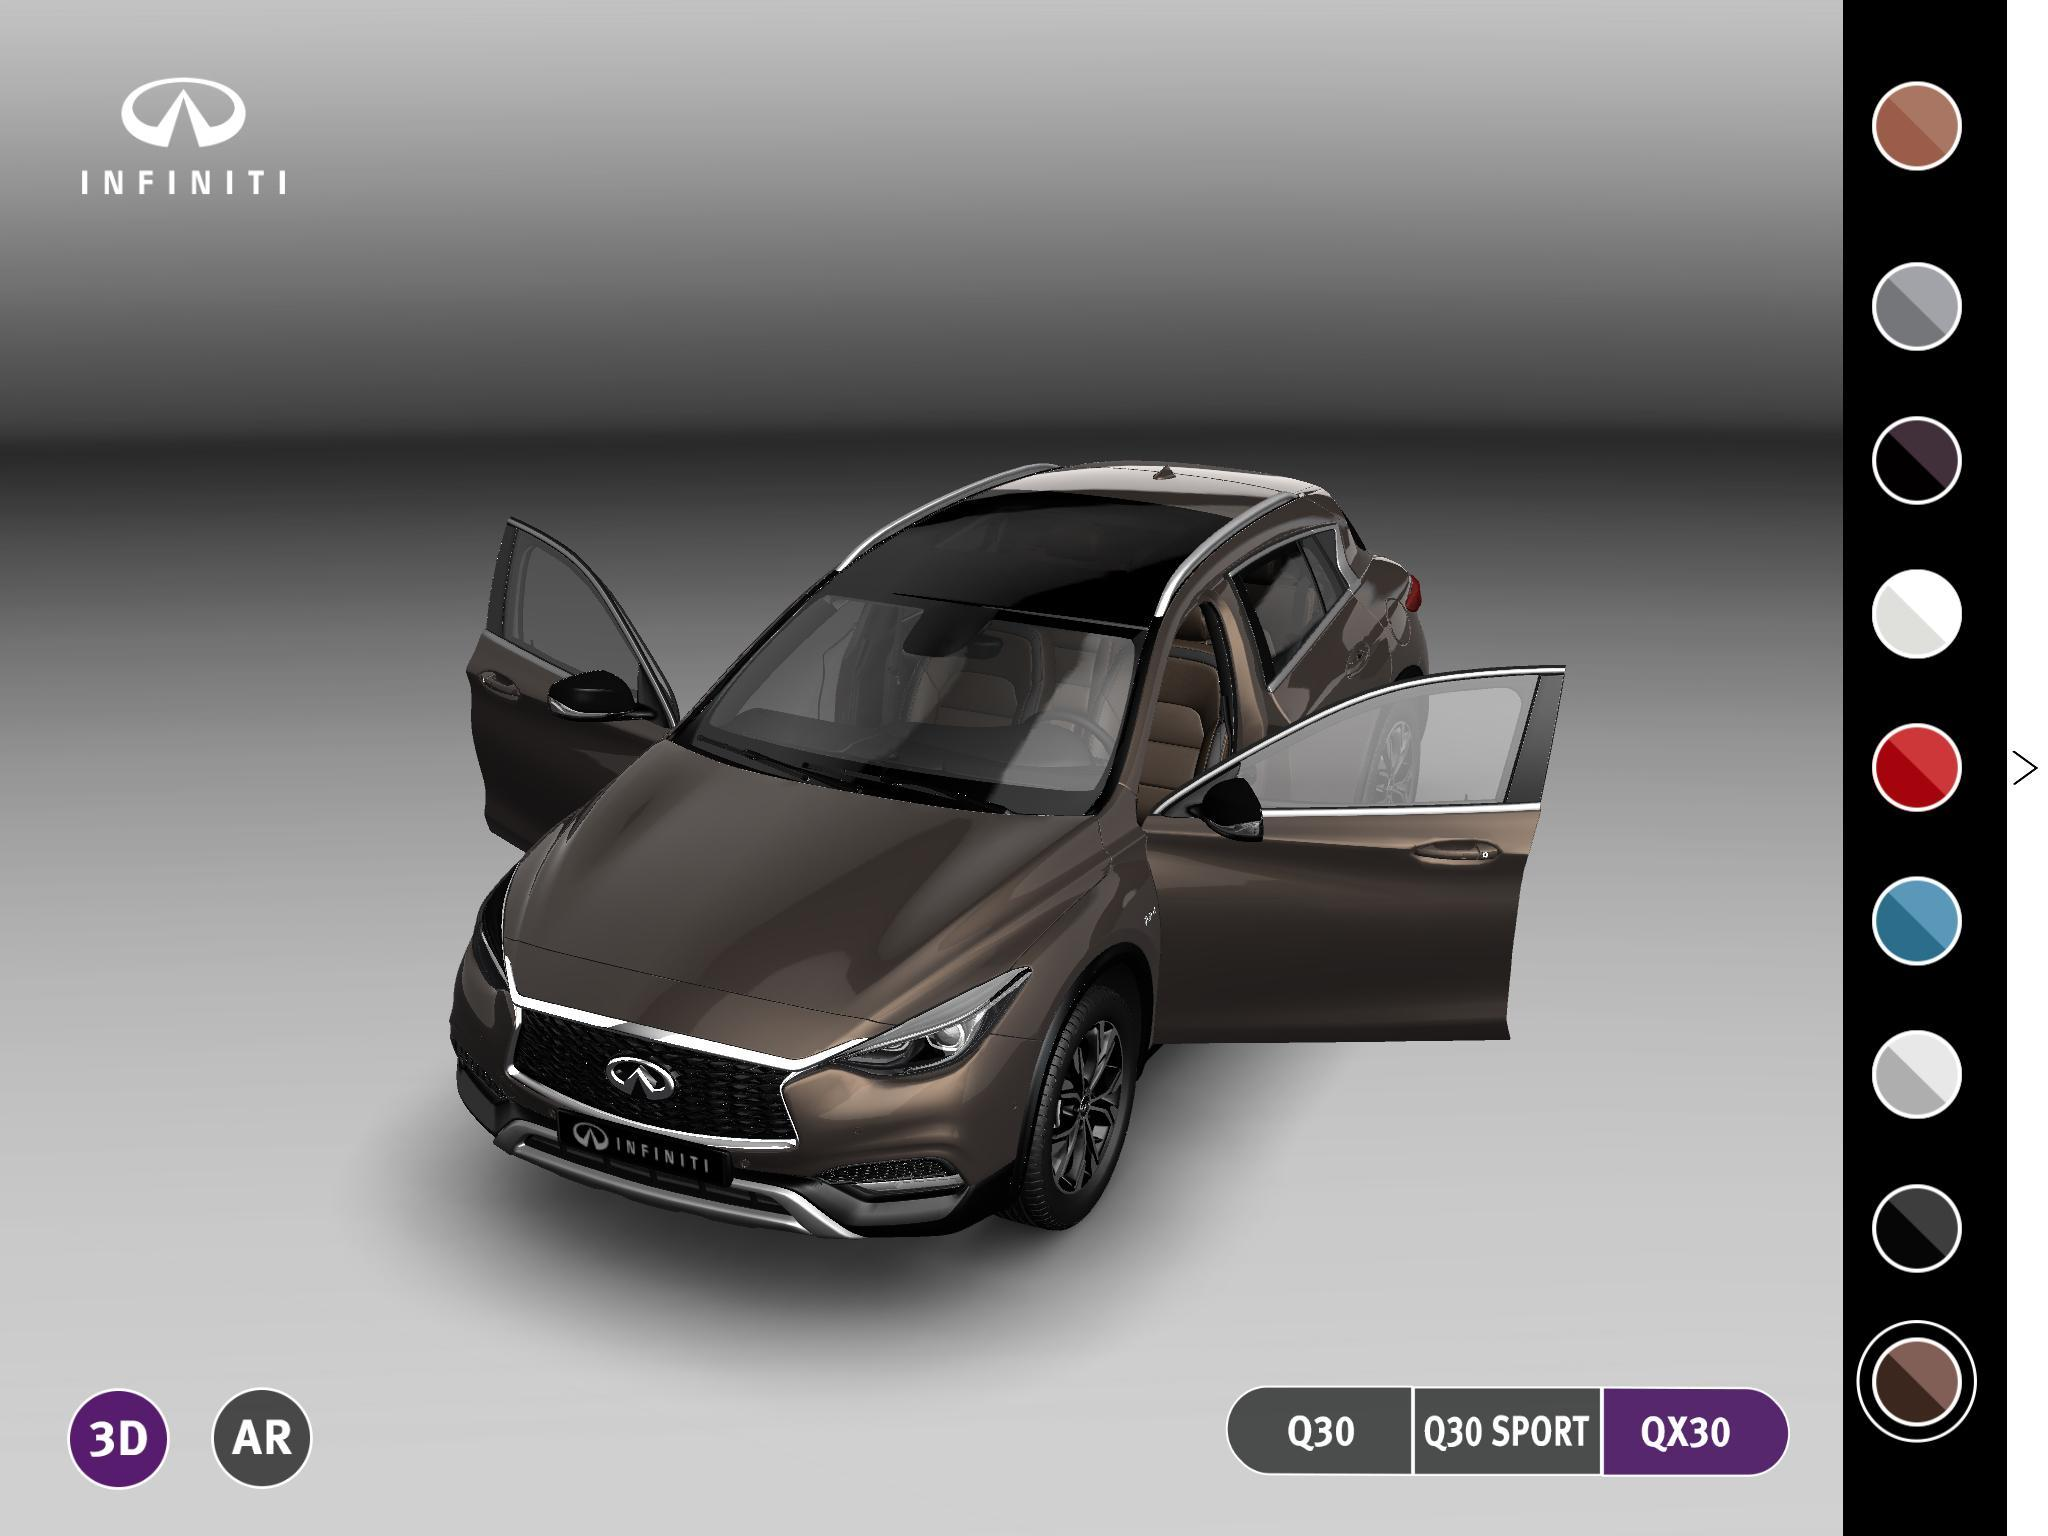 Infiniti Q30/QX30 AR for Android - APK Download